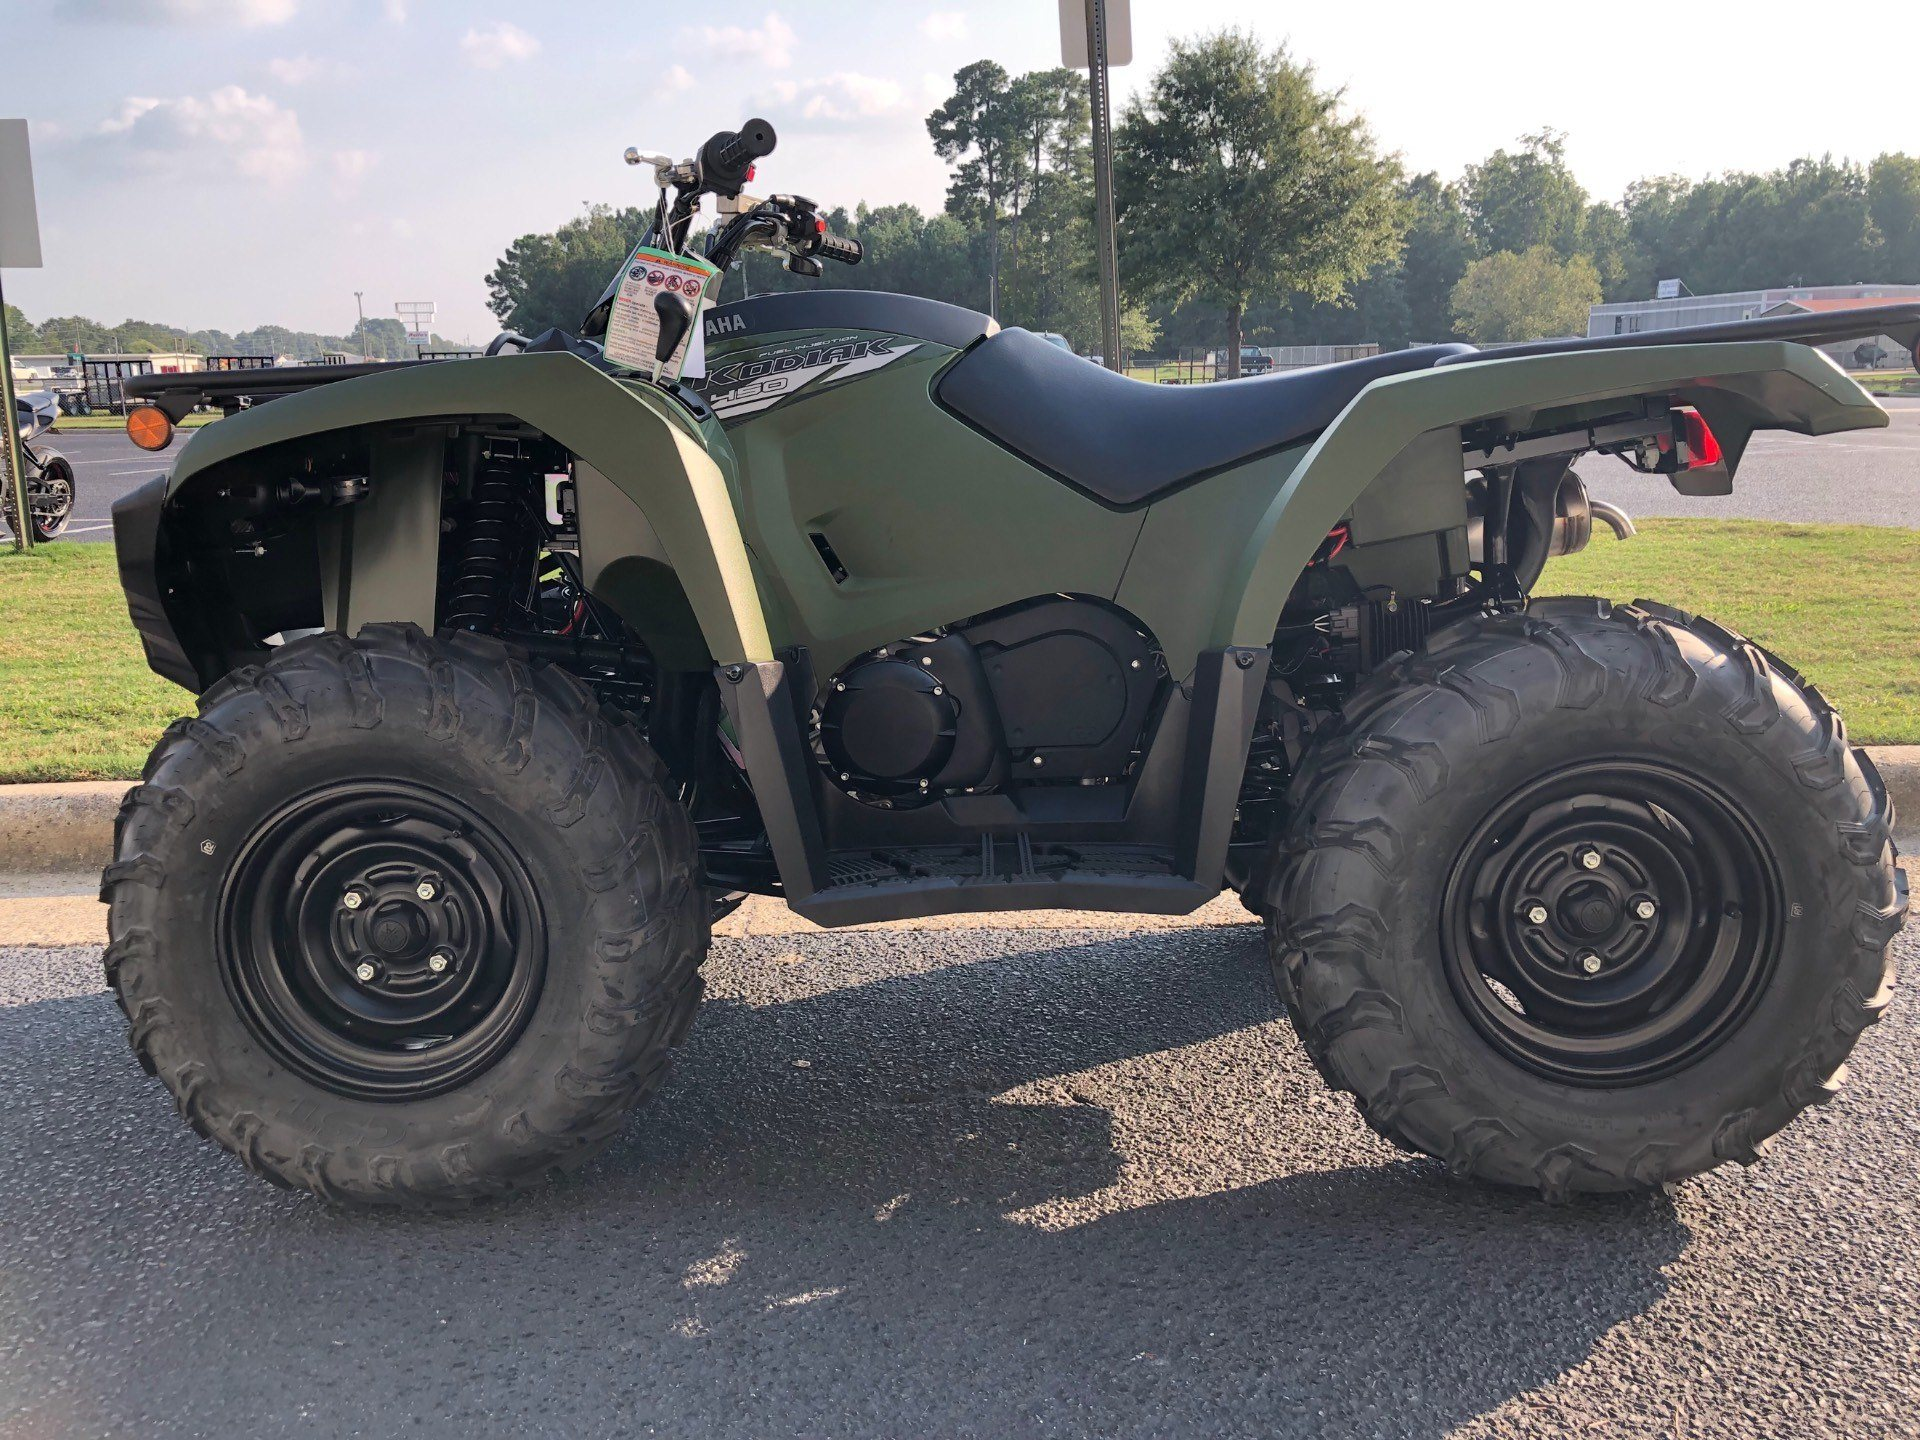 2020 Yamaha Kodiak 450 in Greenville, North Carolina - Photo 7